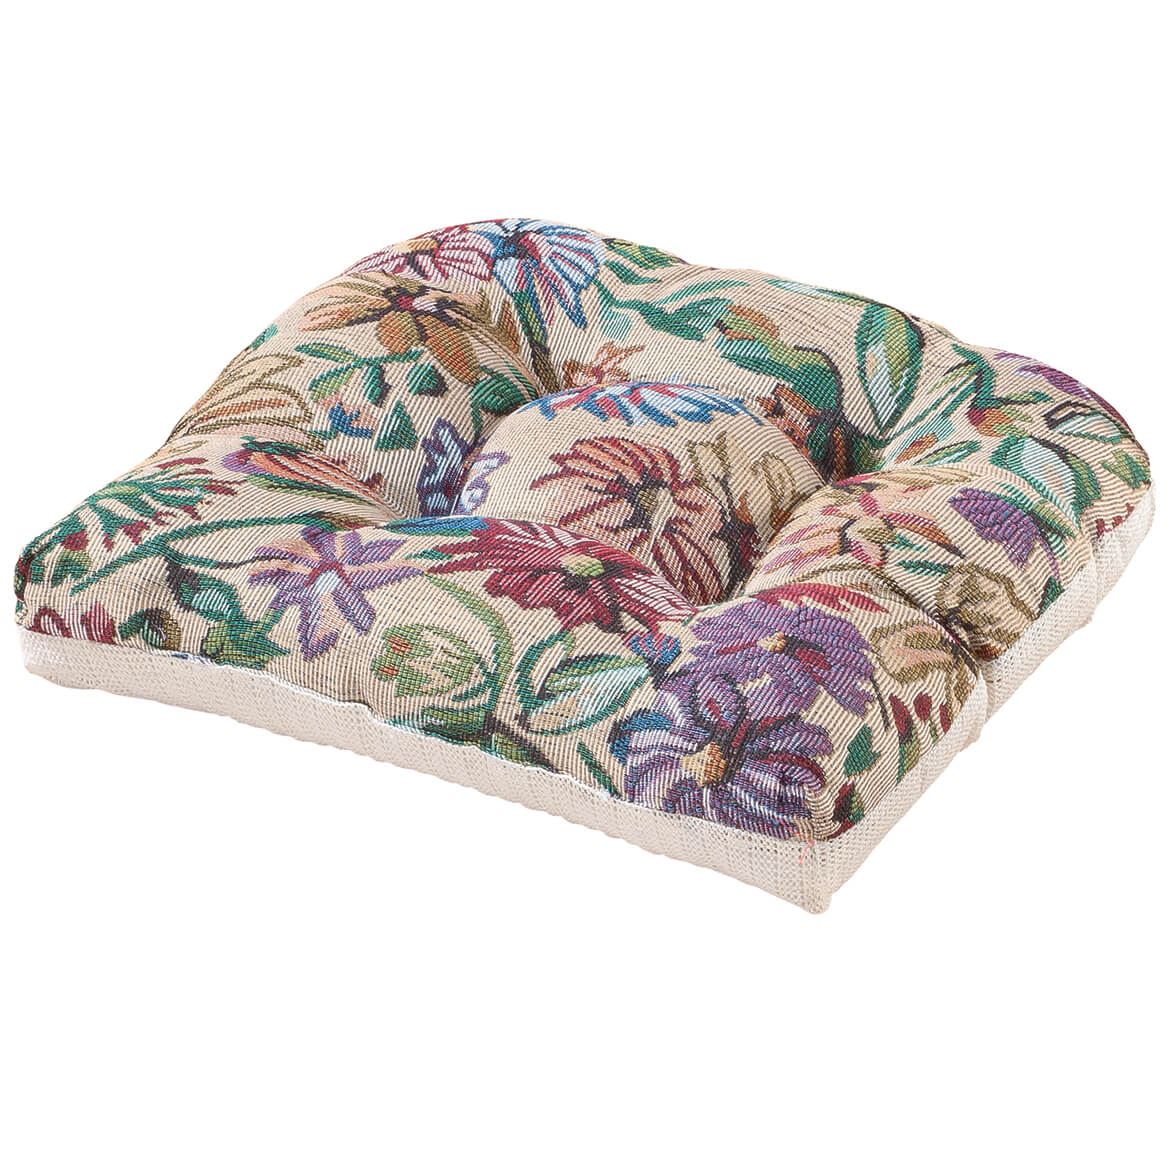 Tapestry Tufted Chair Pad-346493